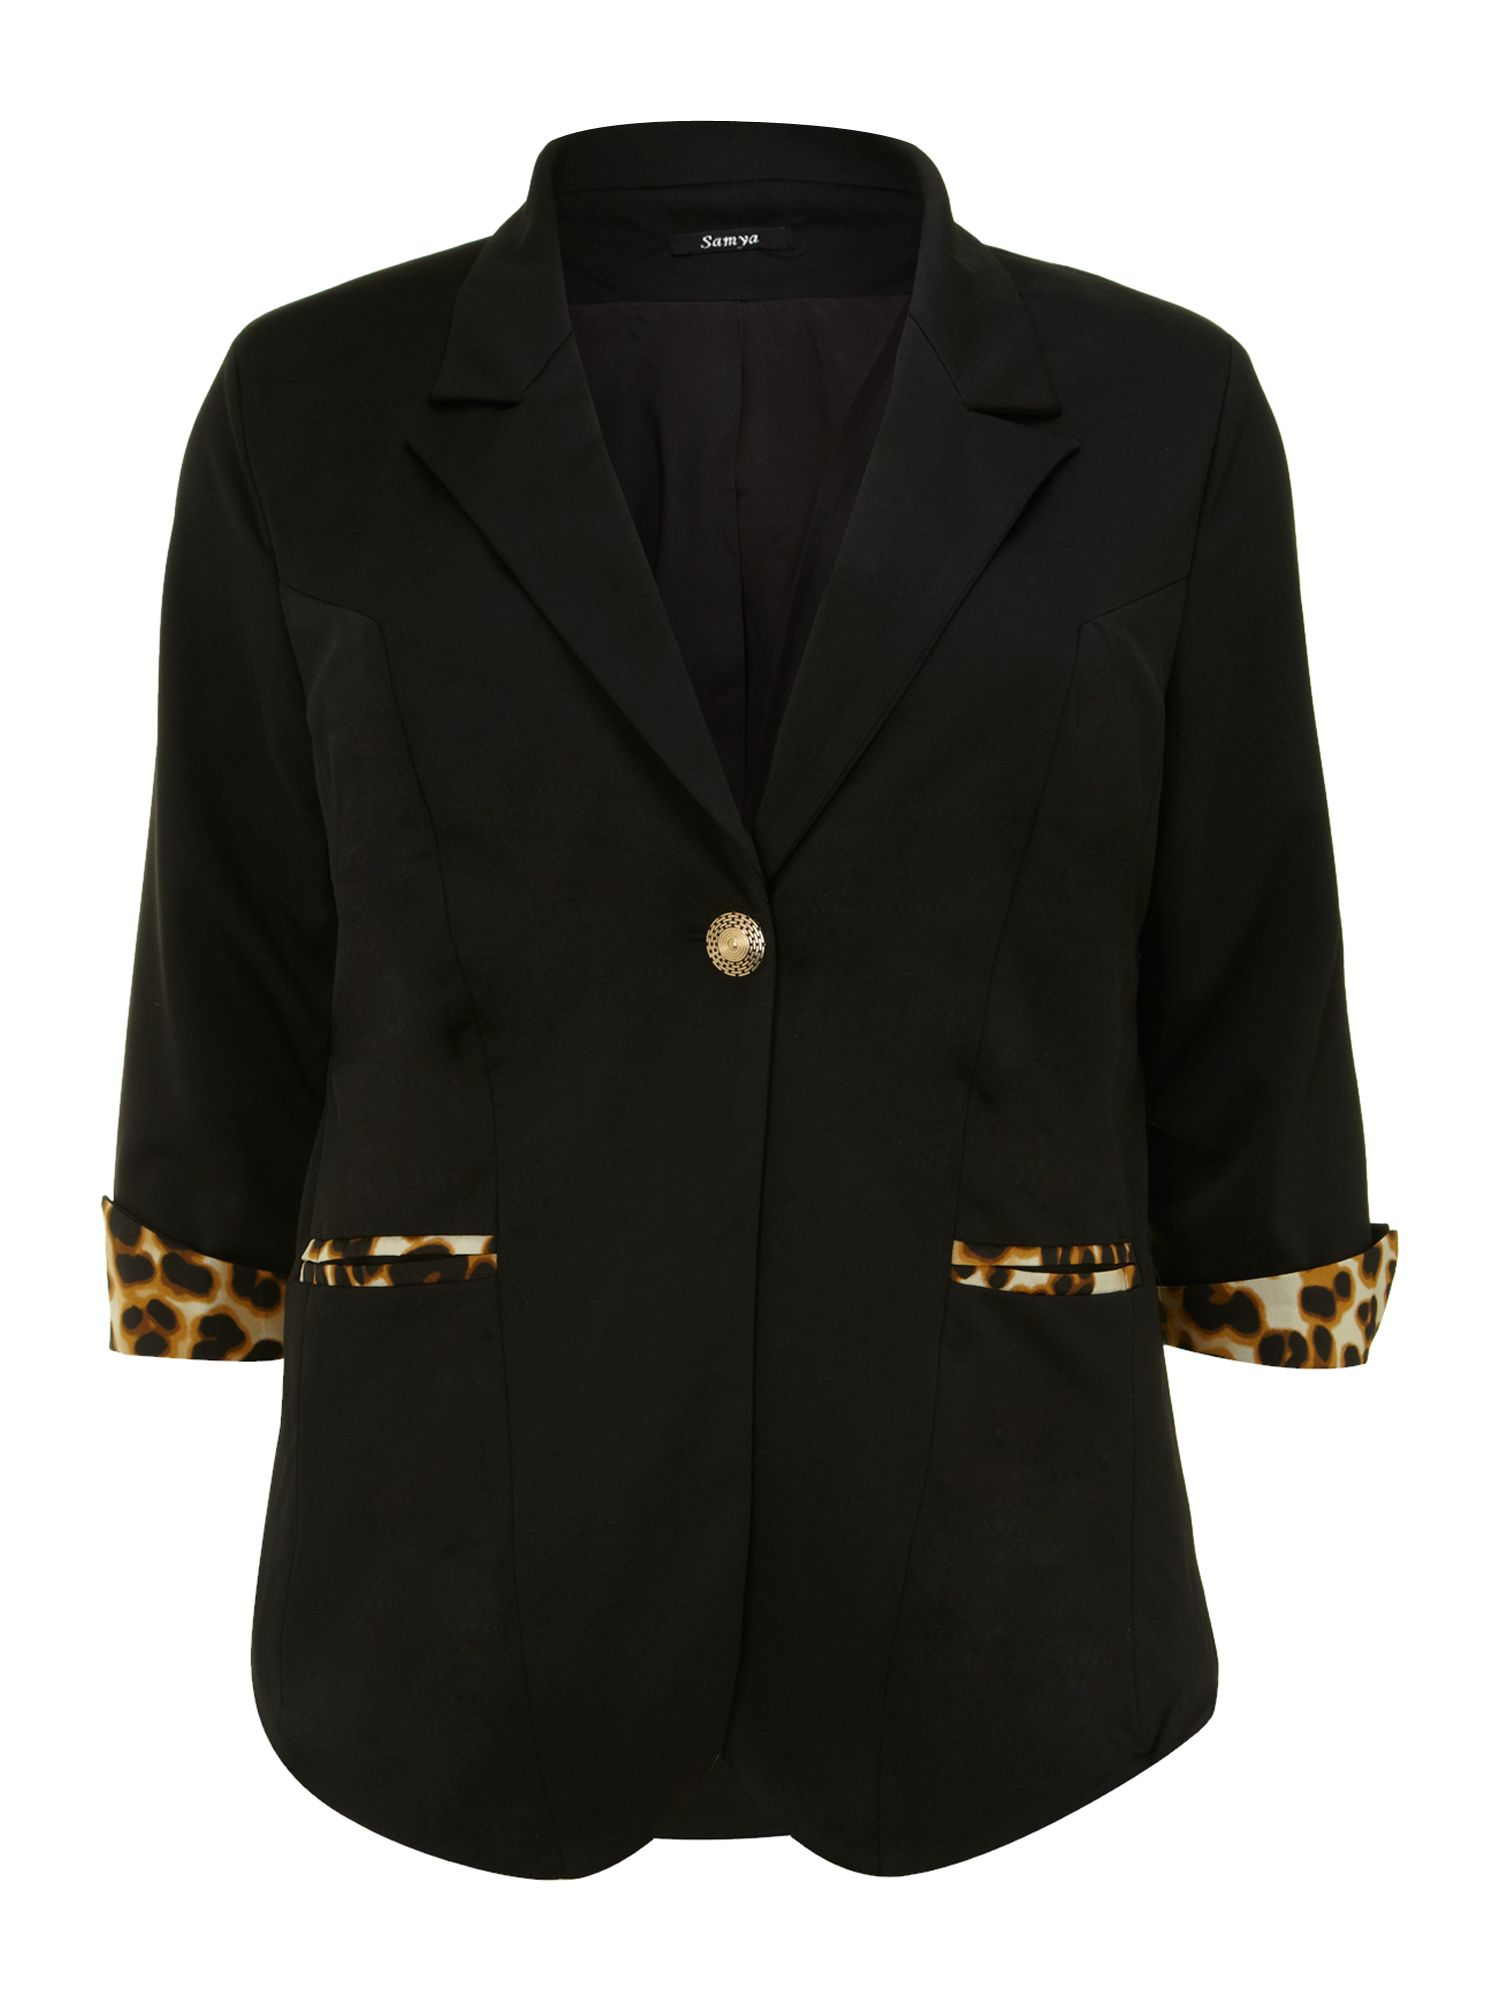 Jersey jacket with wide lapels